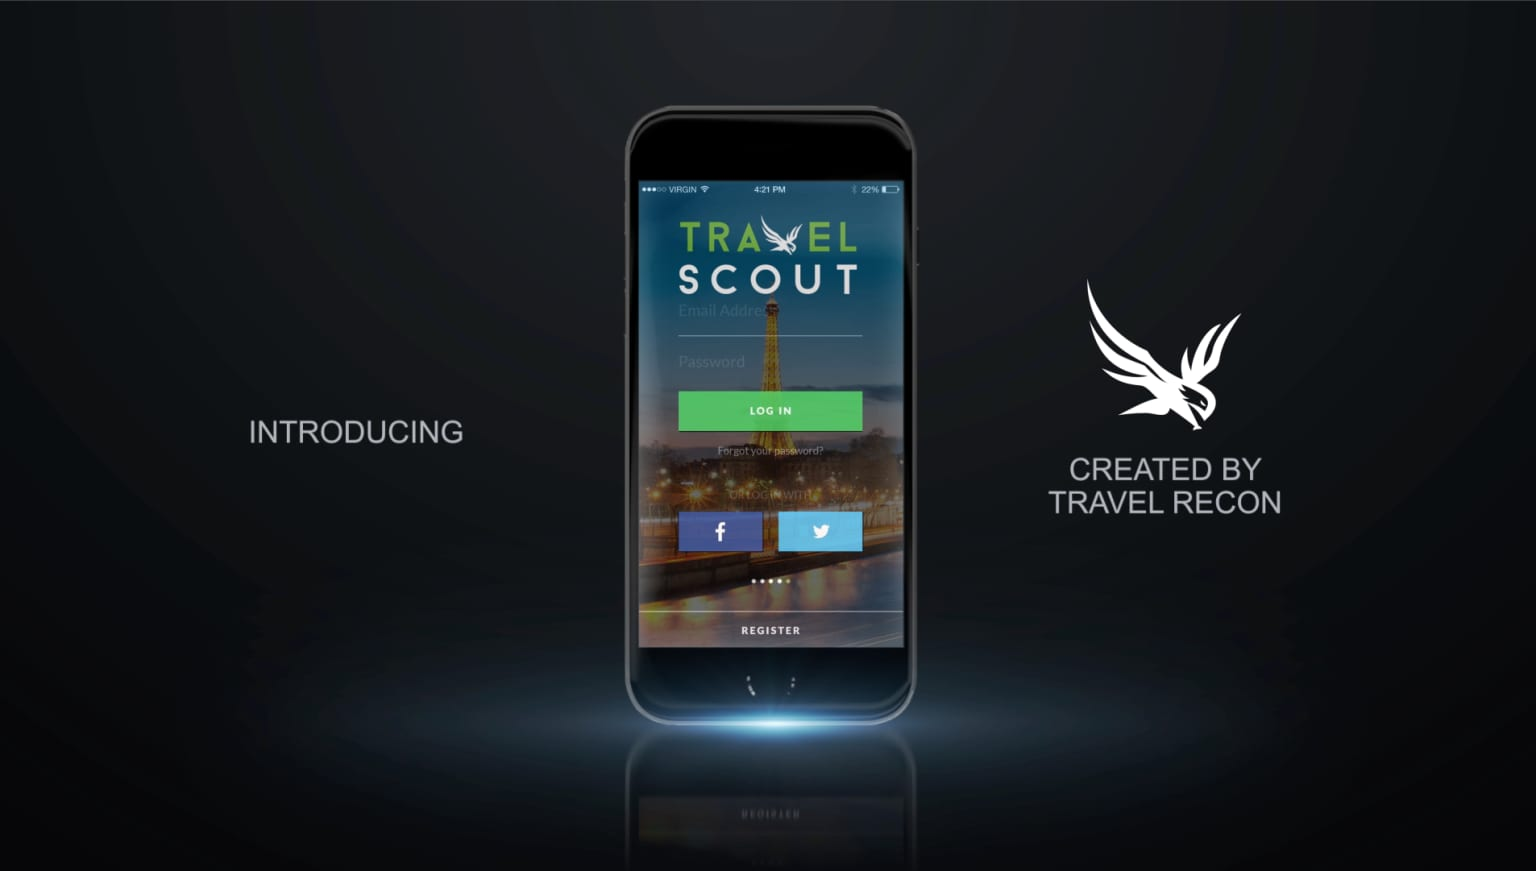 Travel Scout